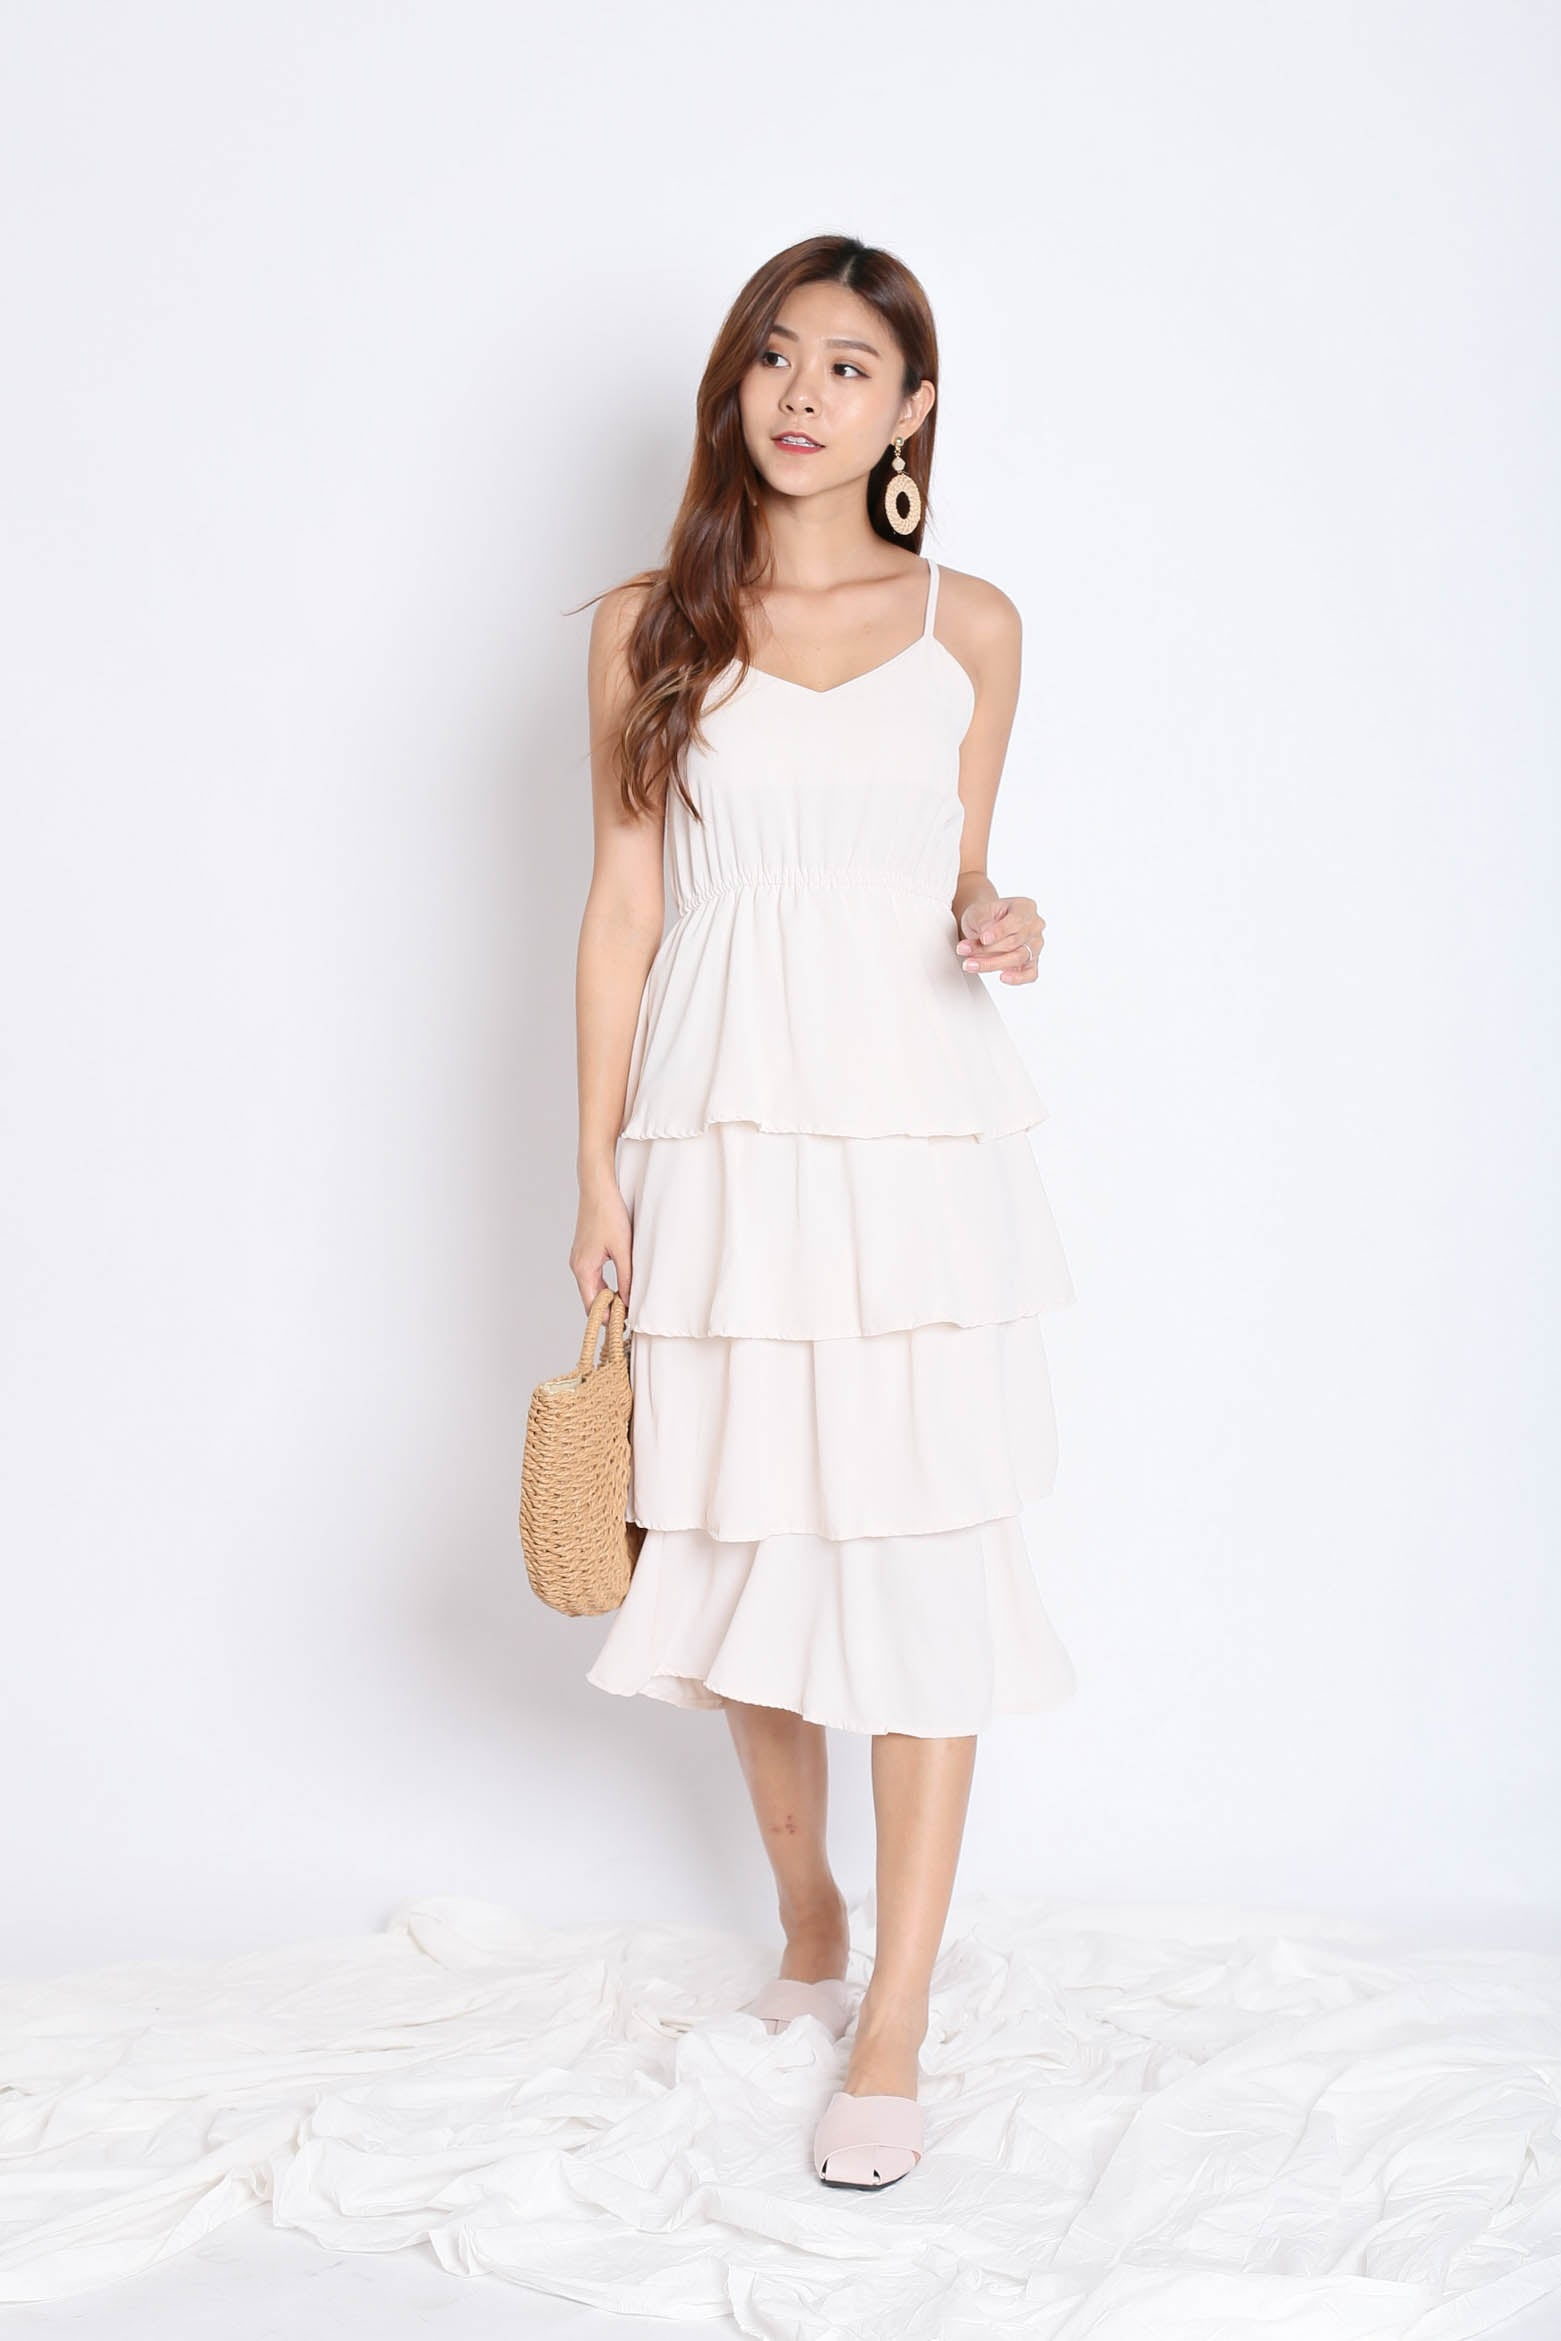 RAEN LAYERED DRESS IN SAND